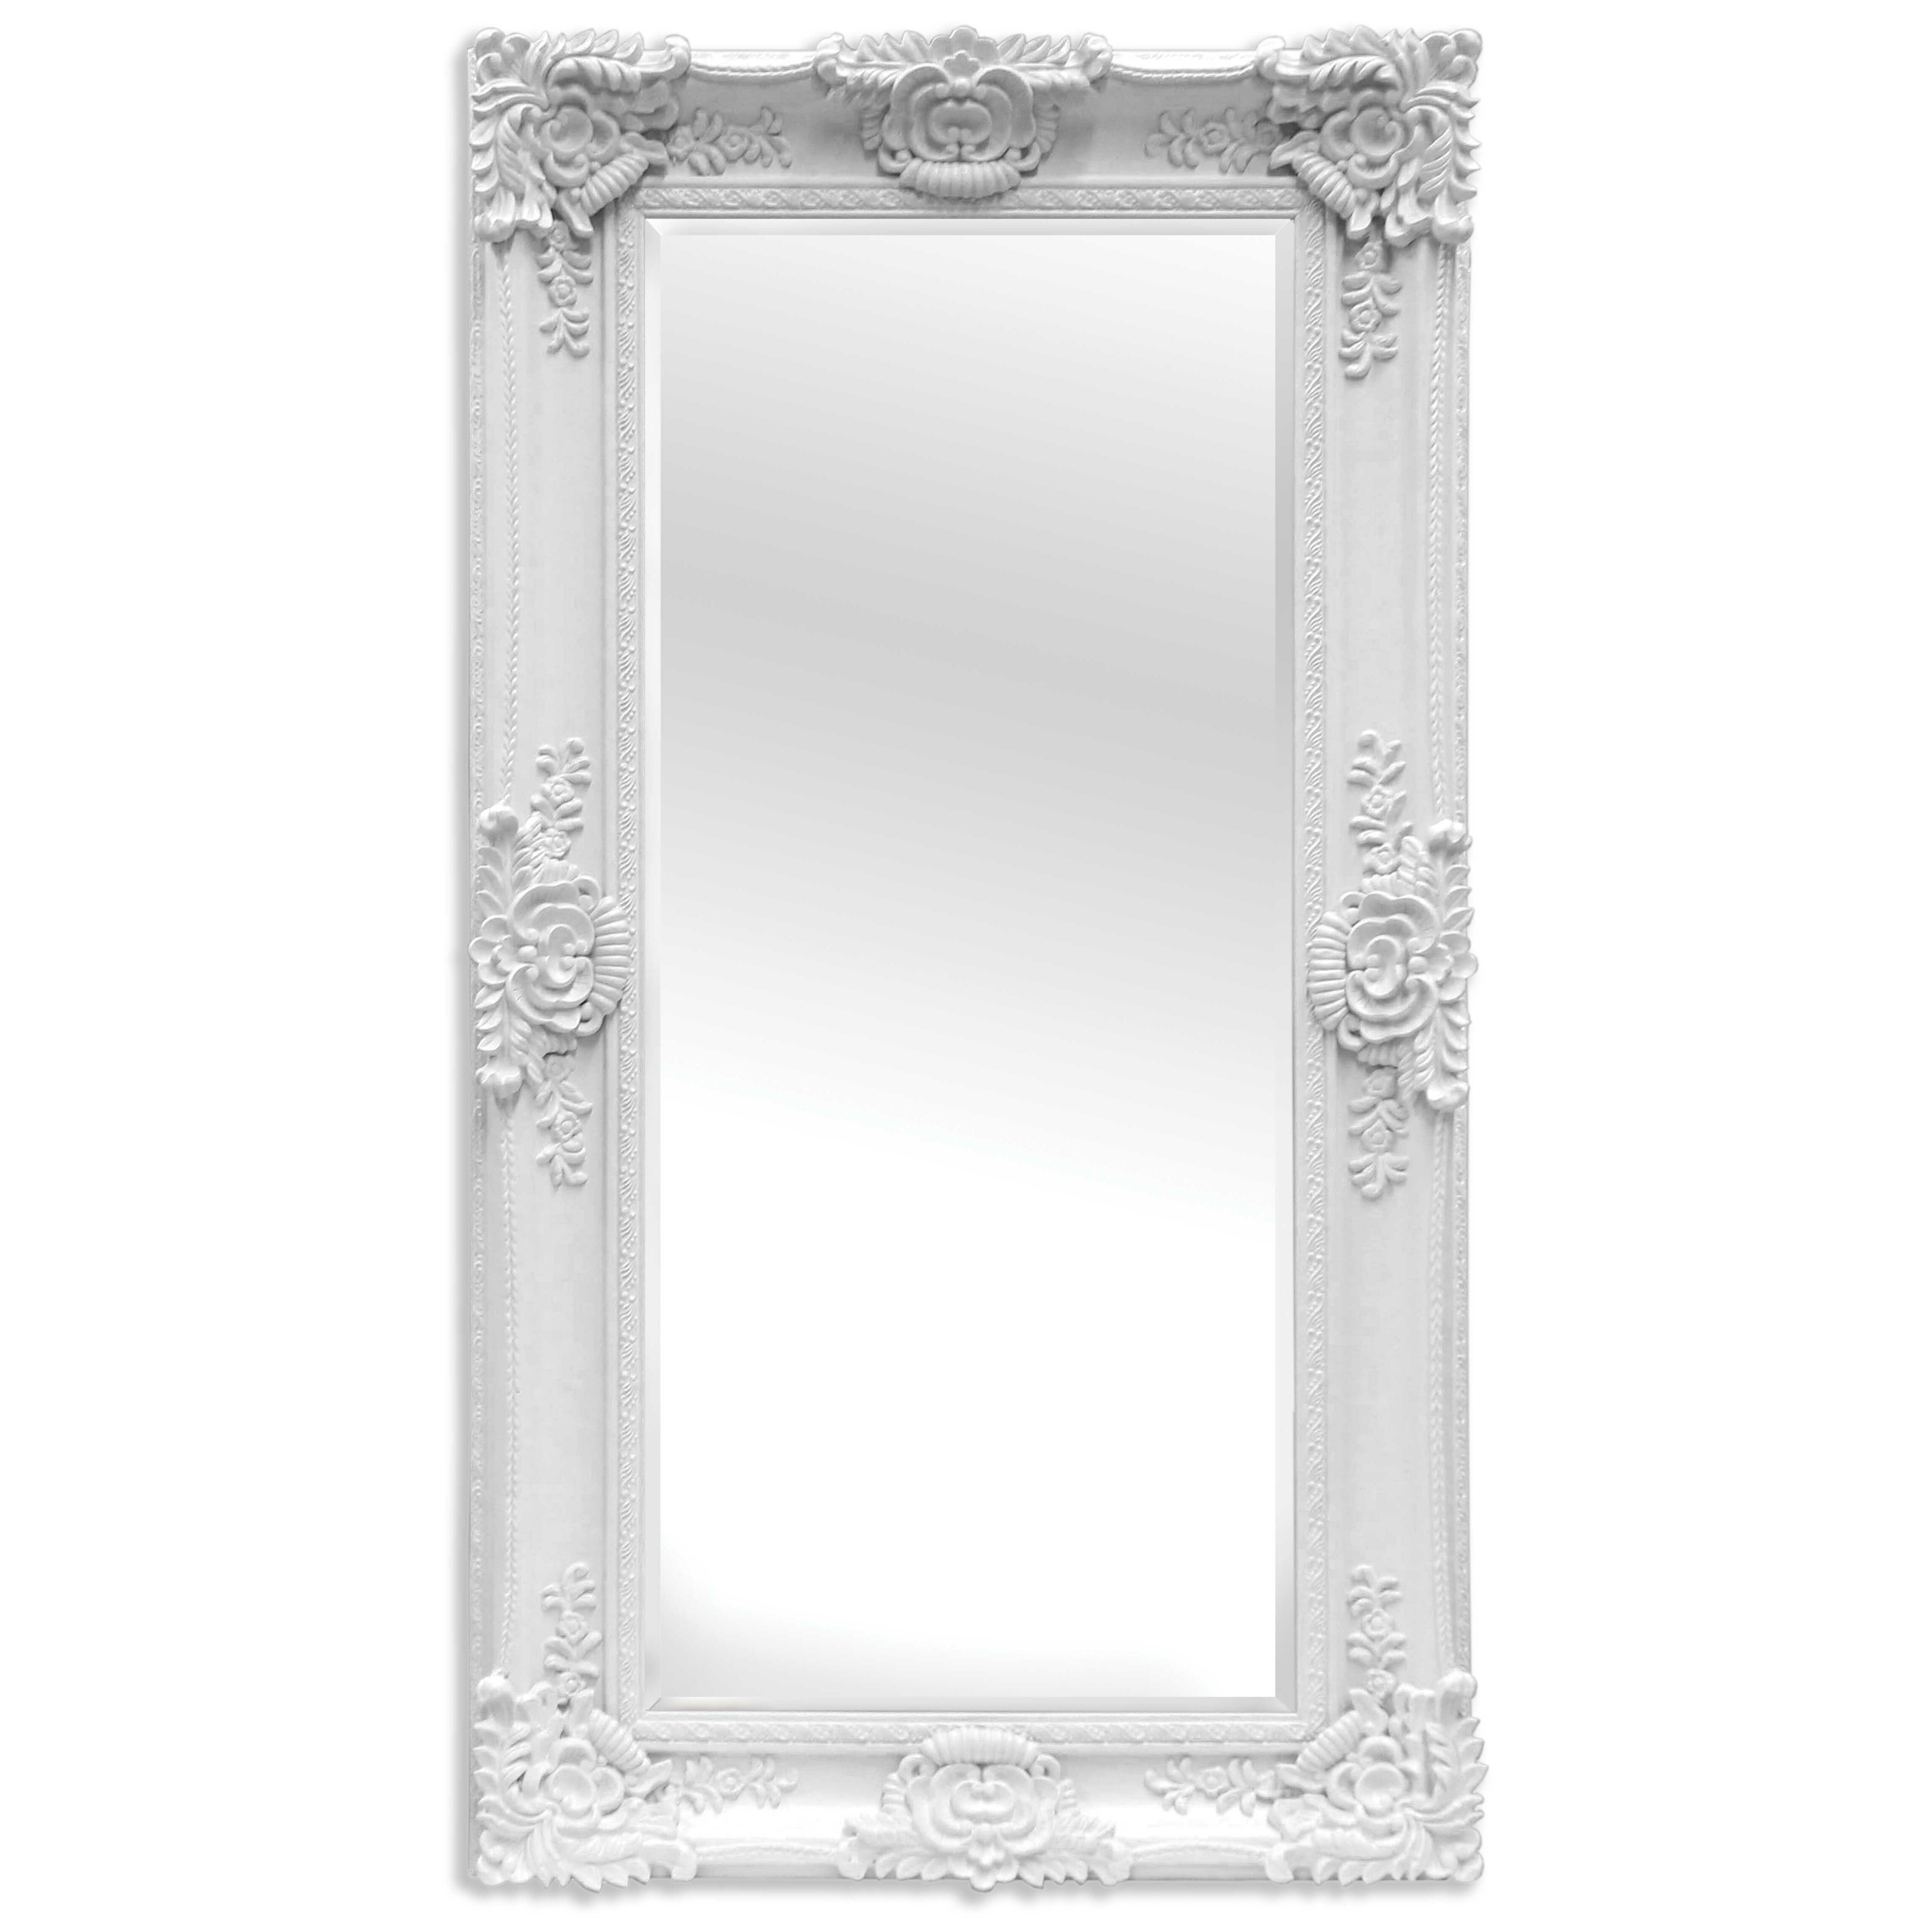 Innova mayfair leaner mirror reviews for Miroir 140x60